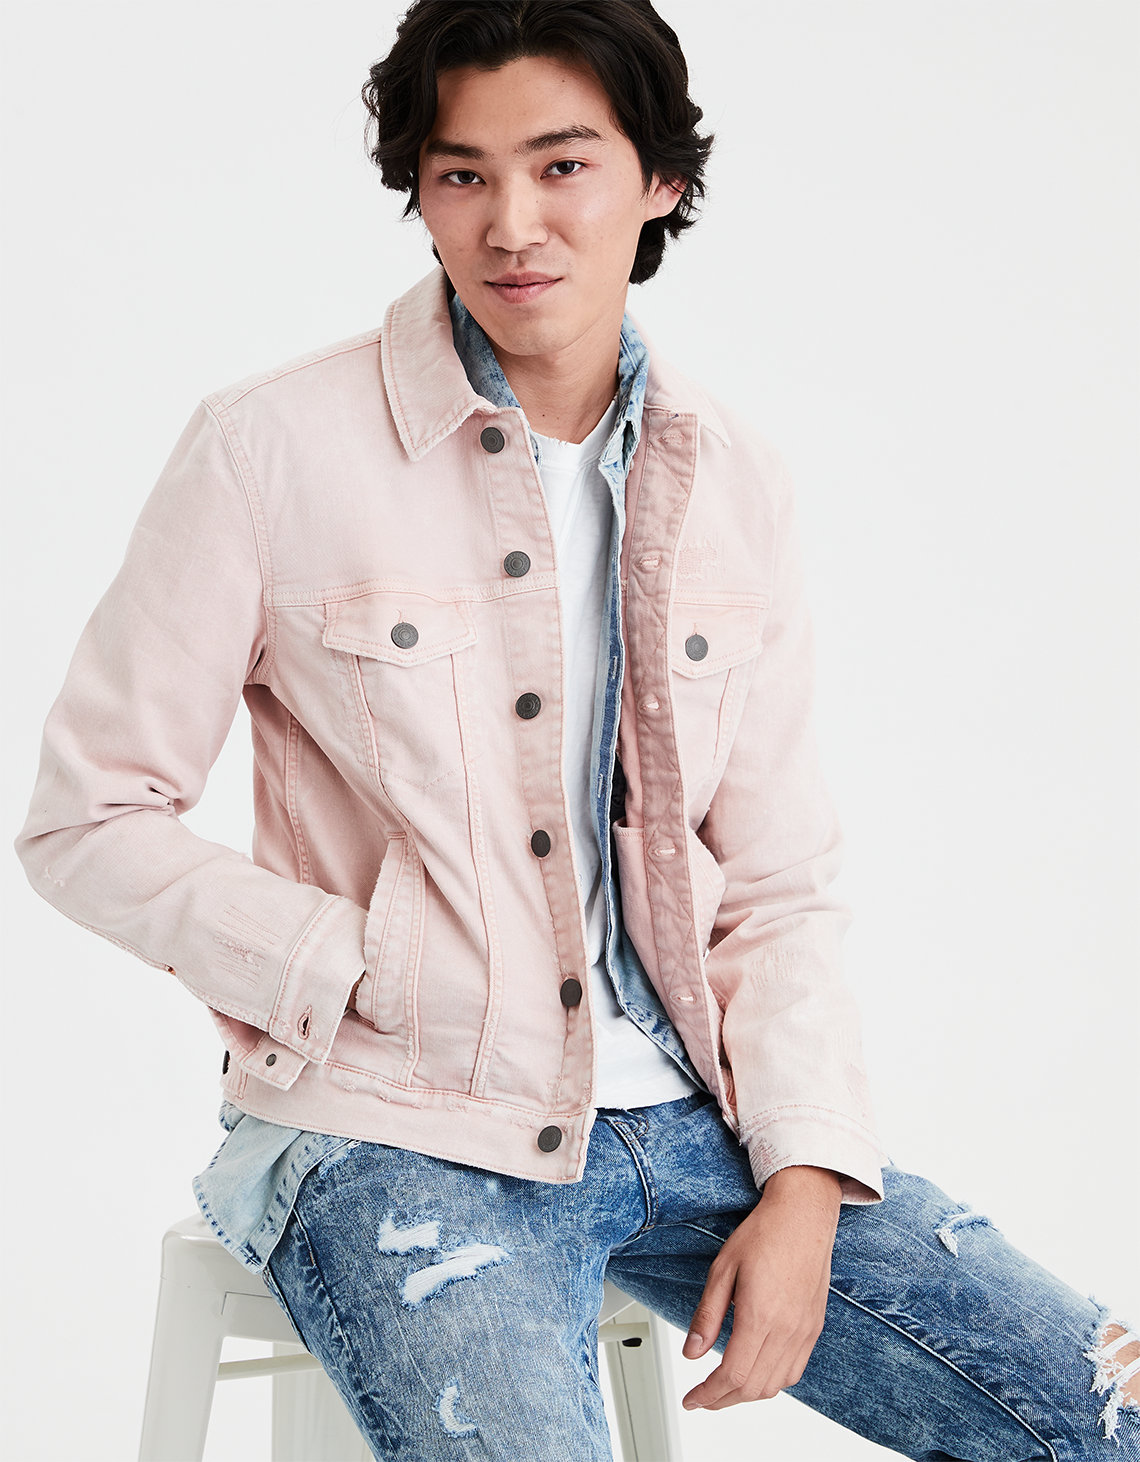 6b13166d68b4 AE Color Denim Jacket. Placeholder image. Product Image